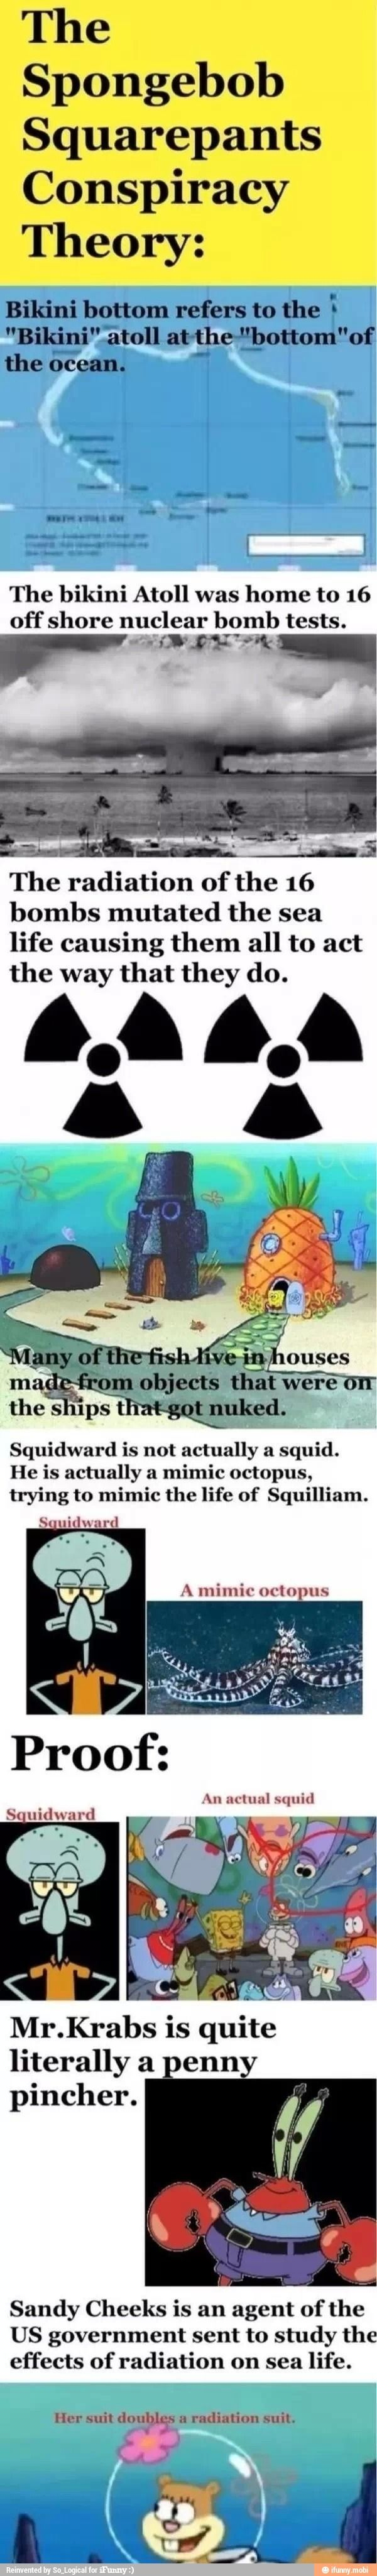 Yes cartoon conspiracy conspiracy theories funny spongebob ruined spongebob memes spongebob squarepants